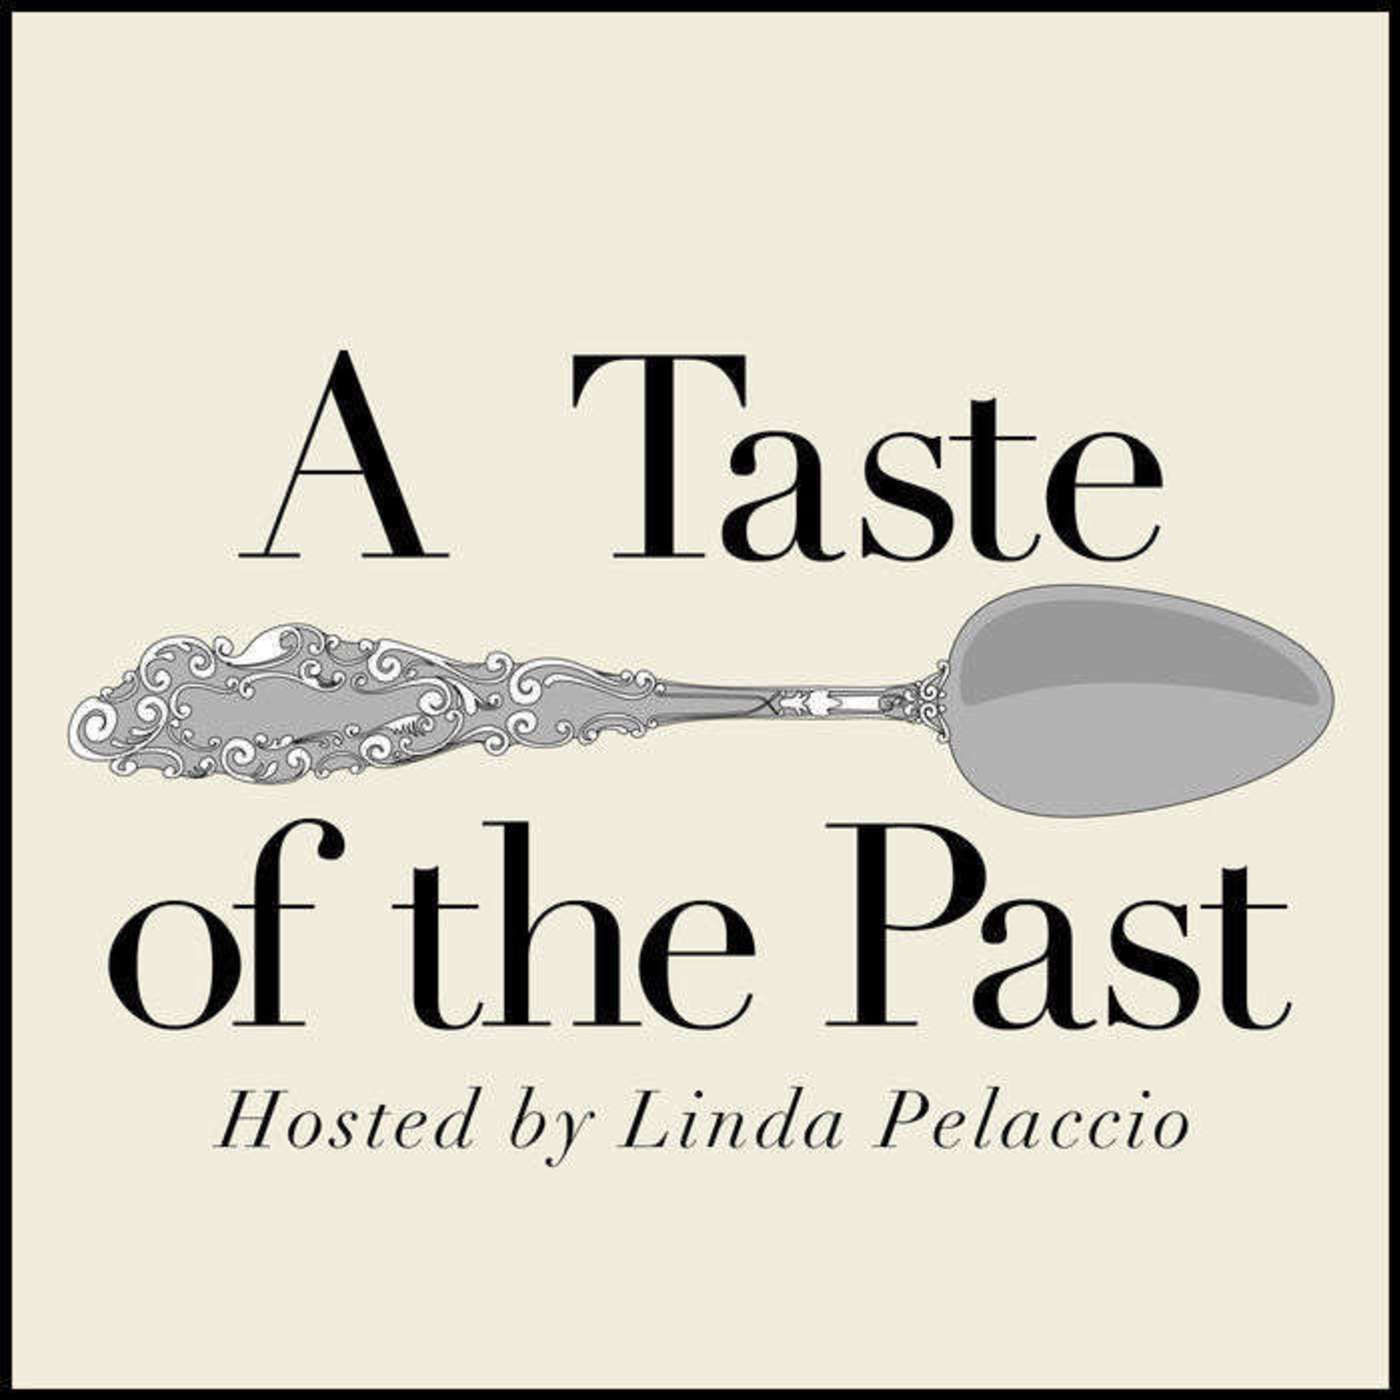 Episode 185: Baby Food: A Cultural History